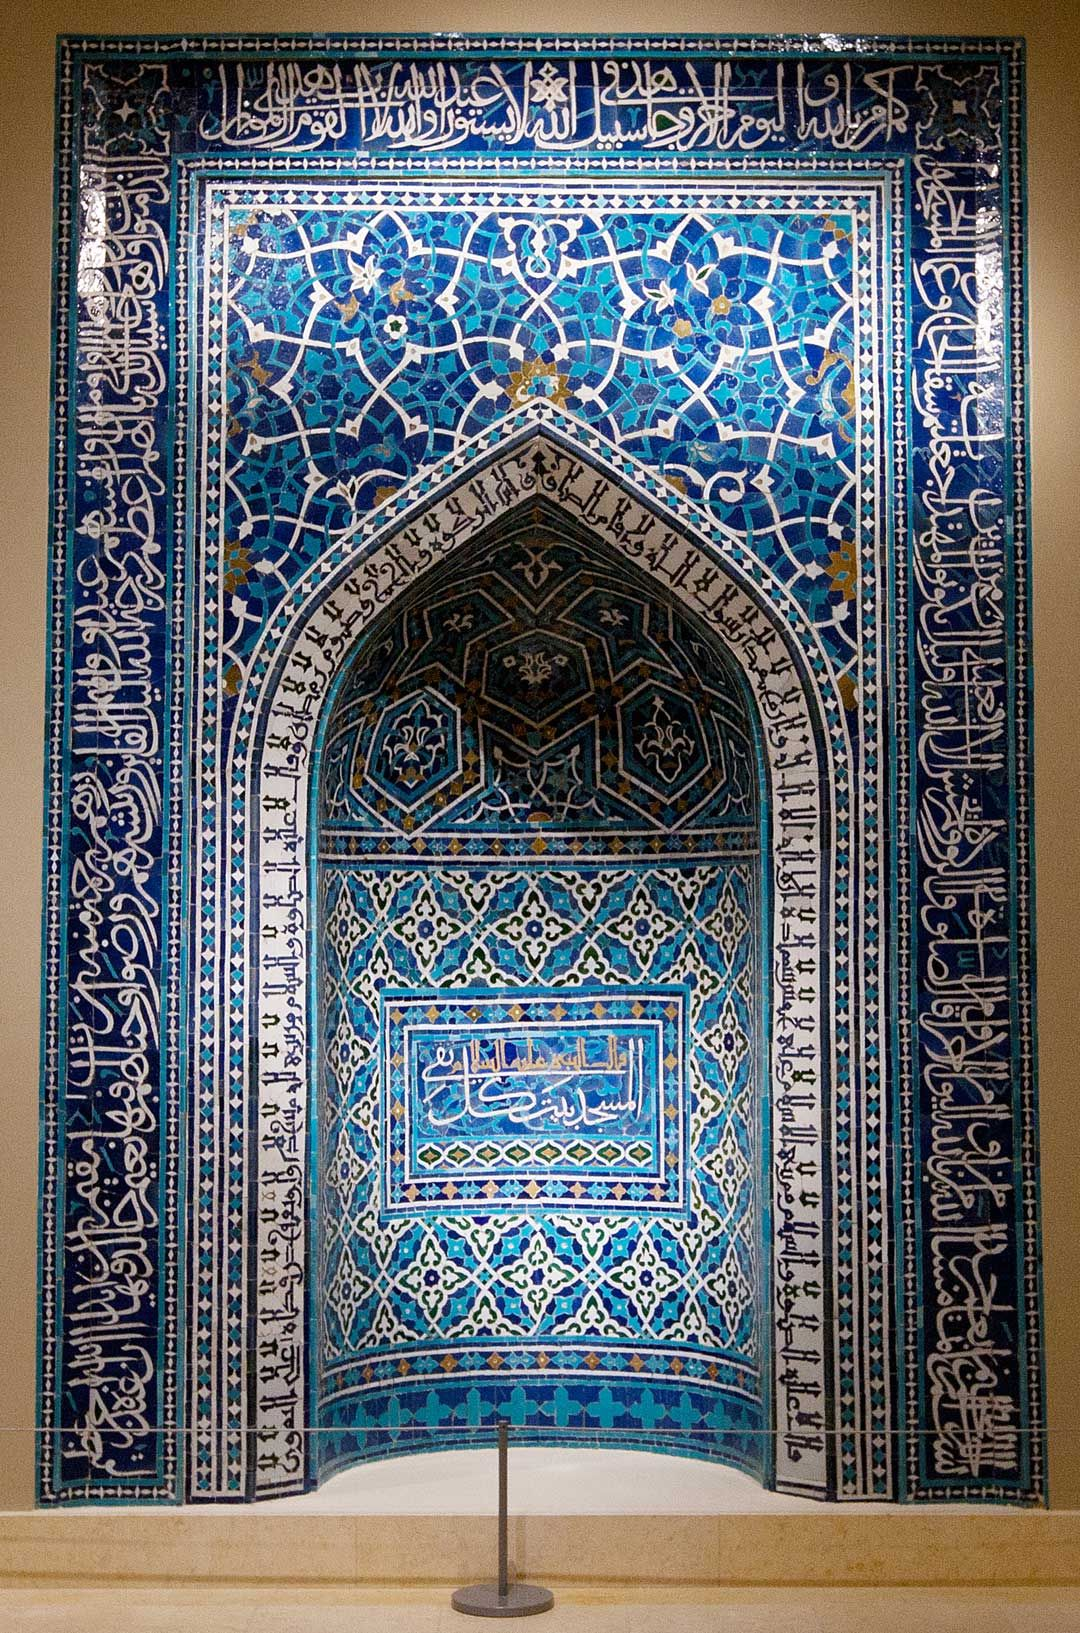 The Tile Mosaic Mihrab From Madrasa